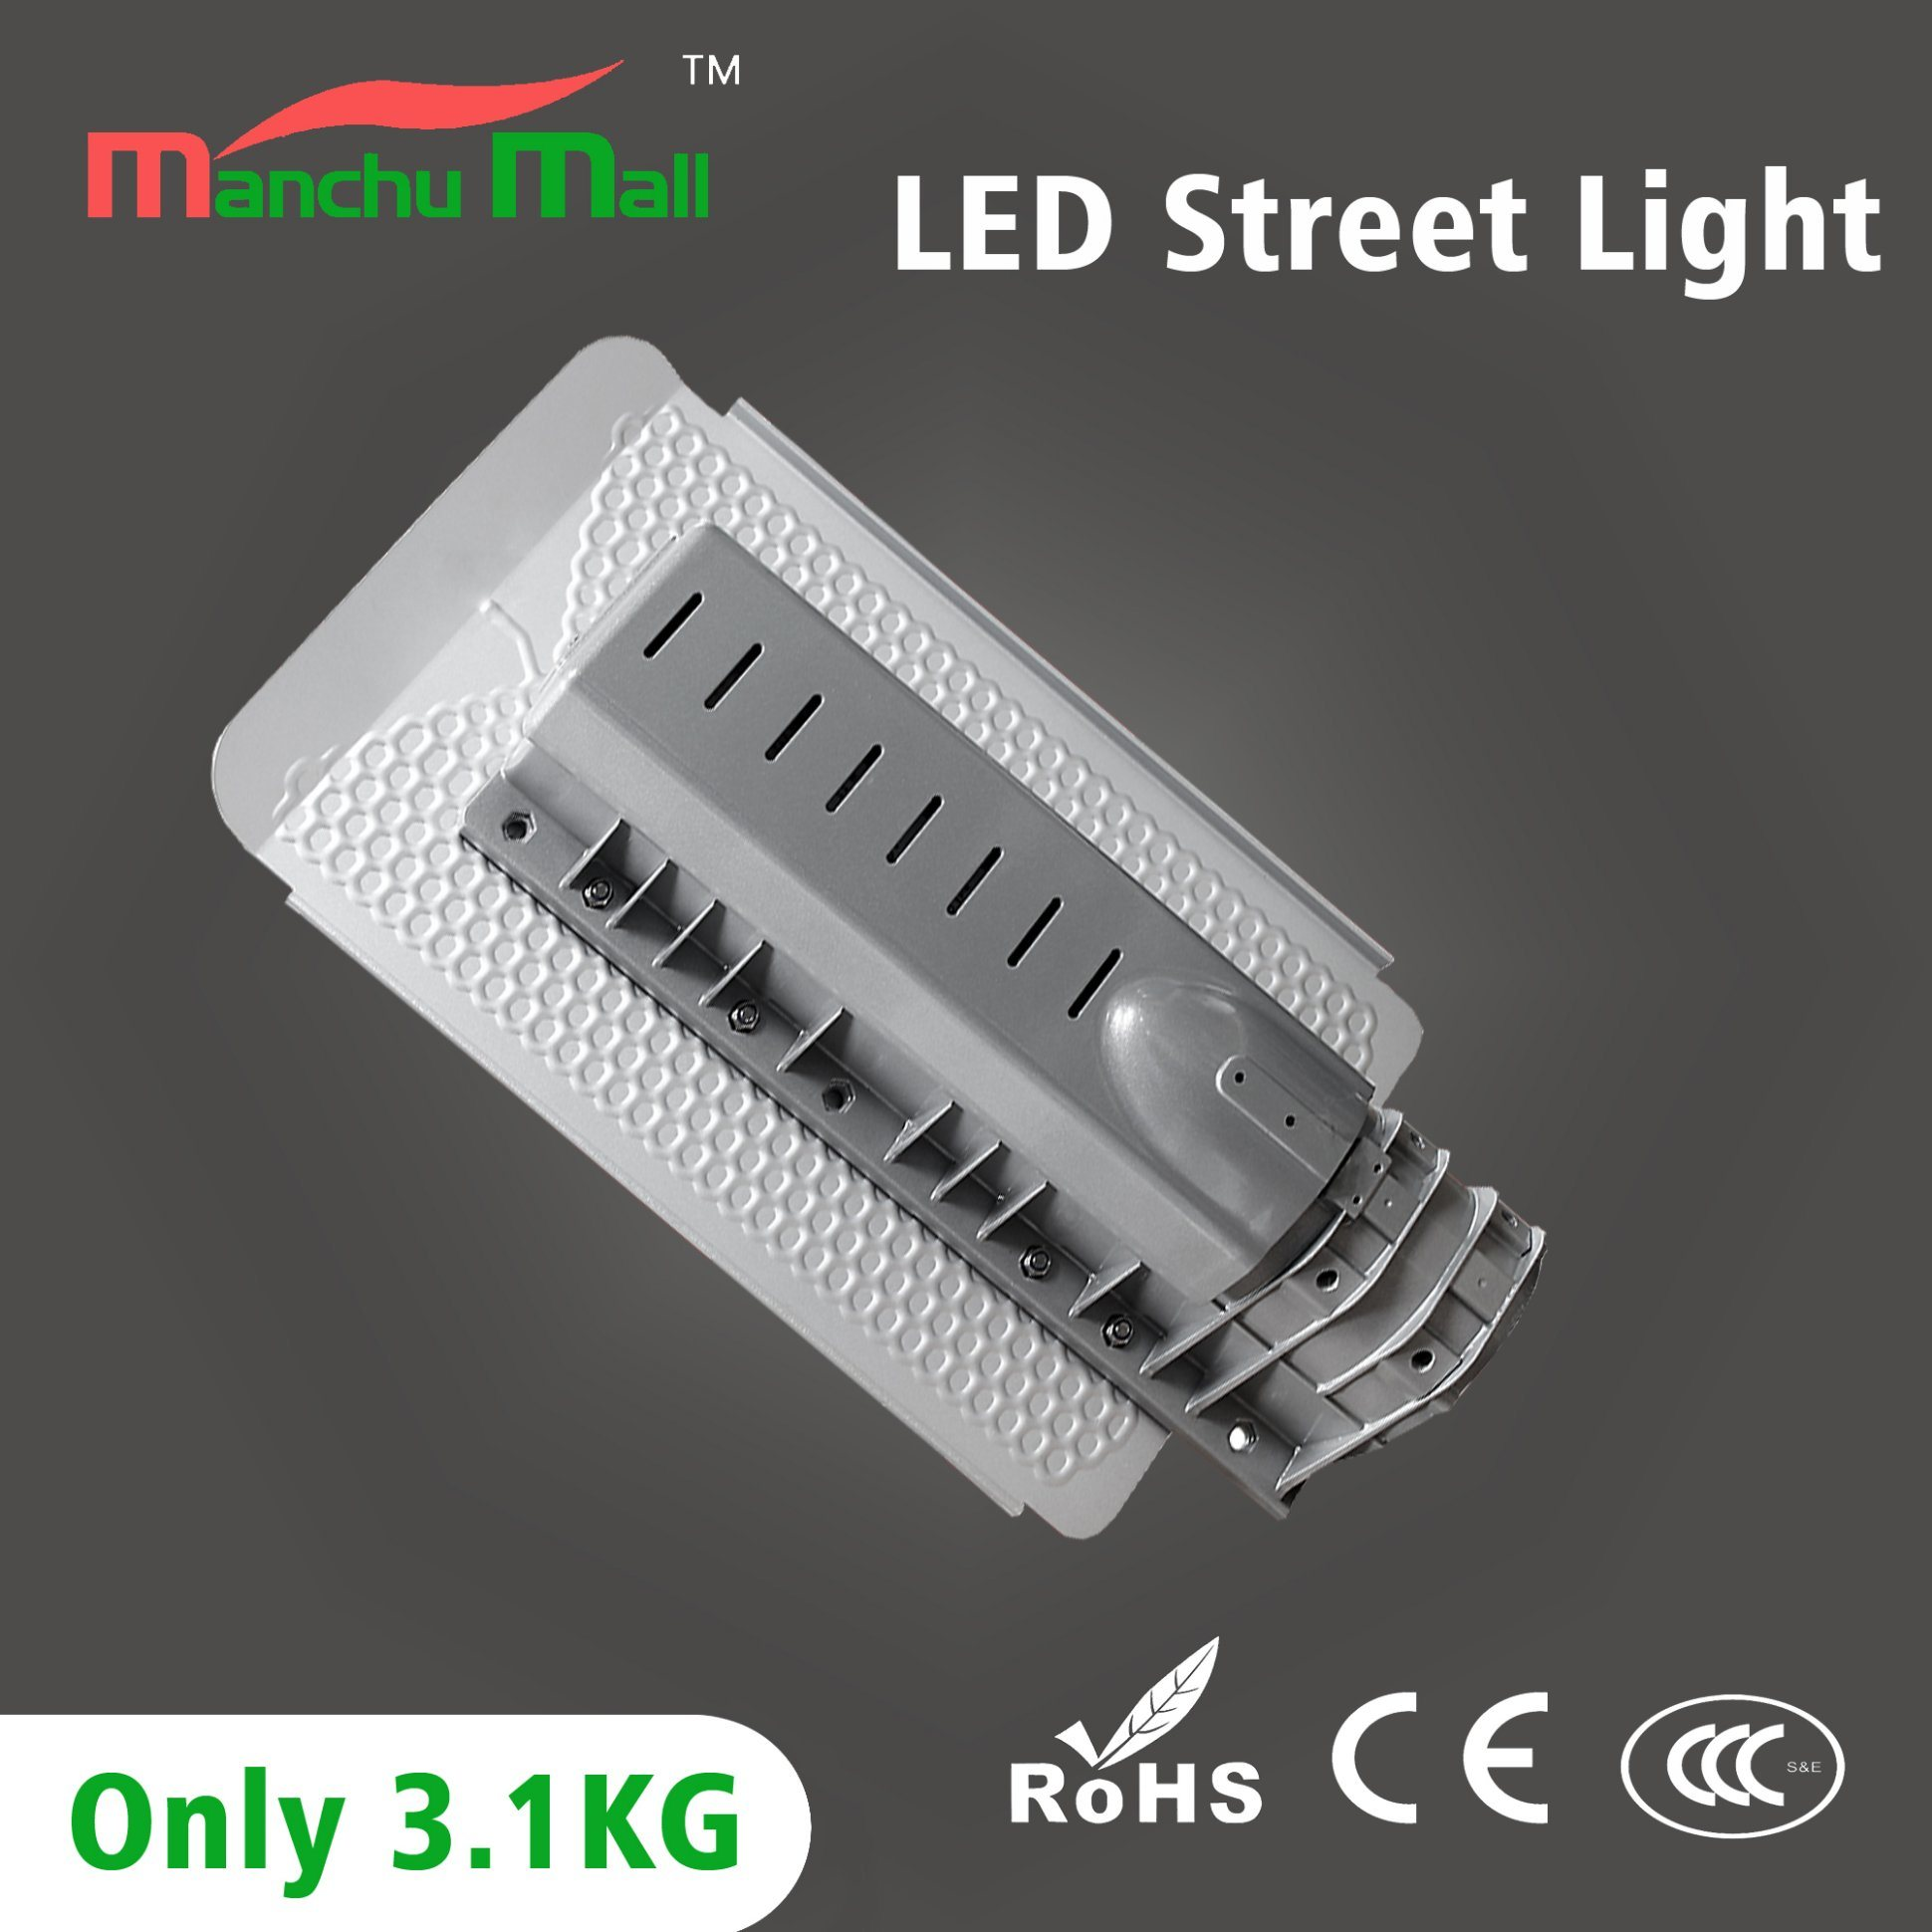 80% Enegy Save 150W Ultralight LED Street Light